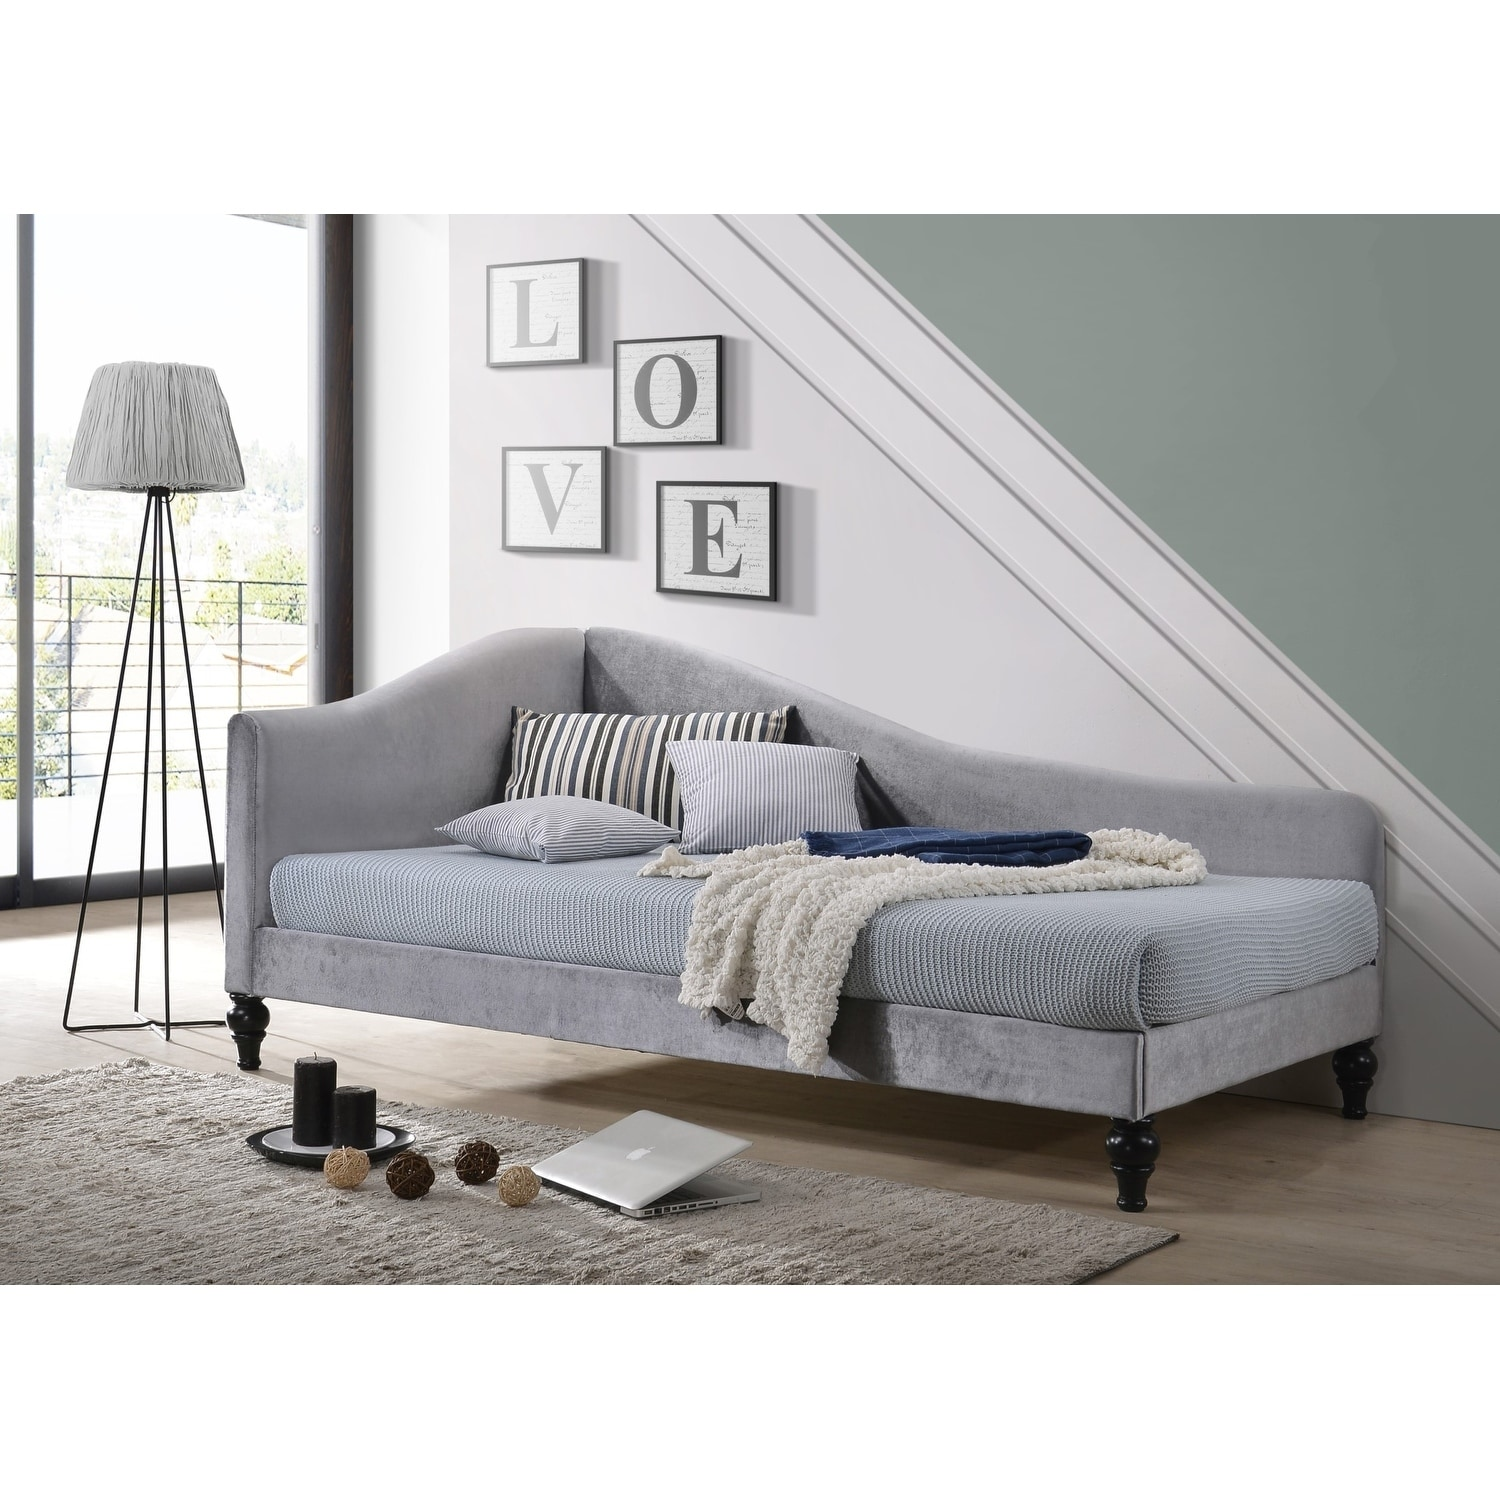 Shop enzo upholstered daybed free shipping today overstock 27405694